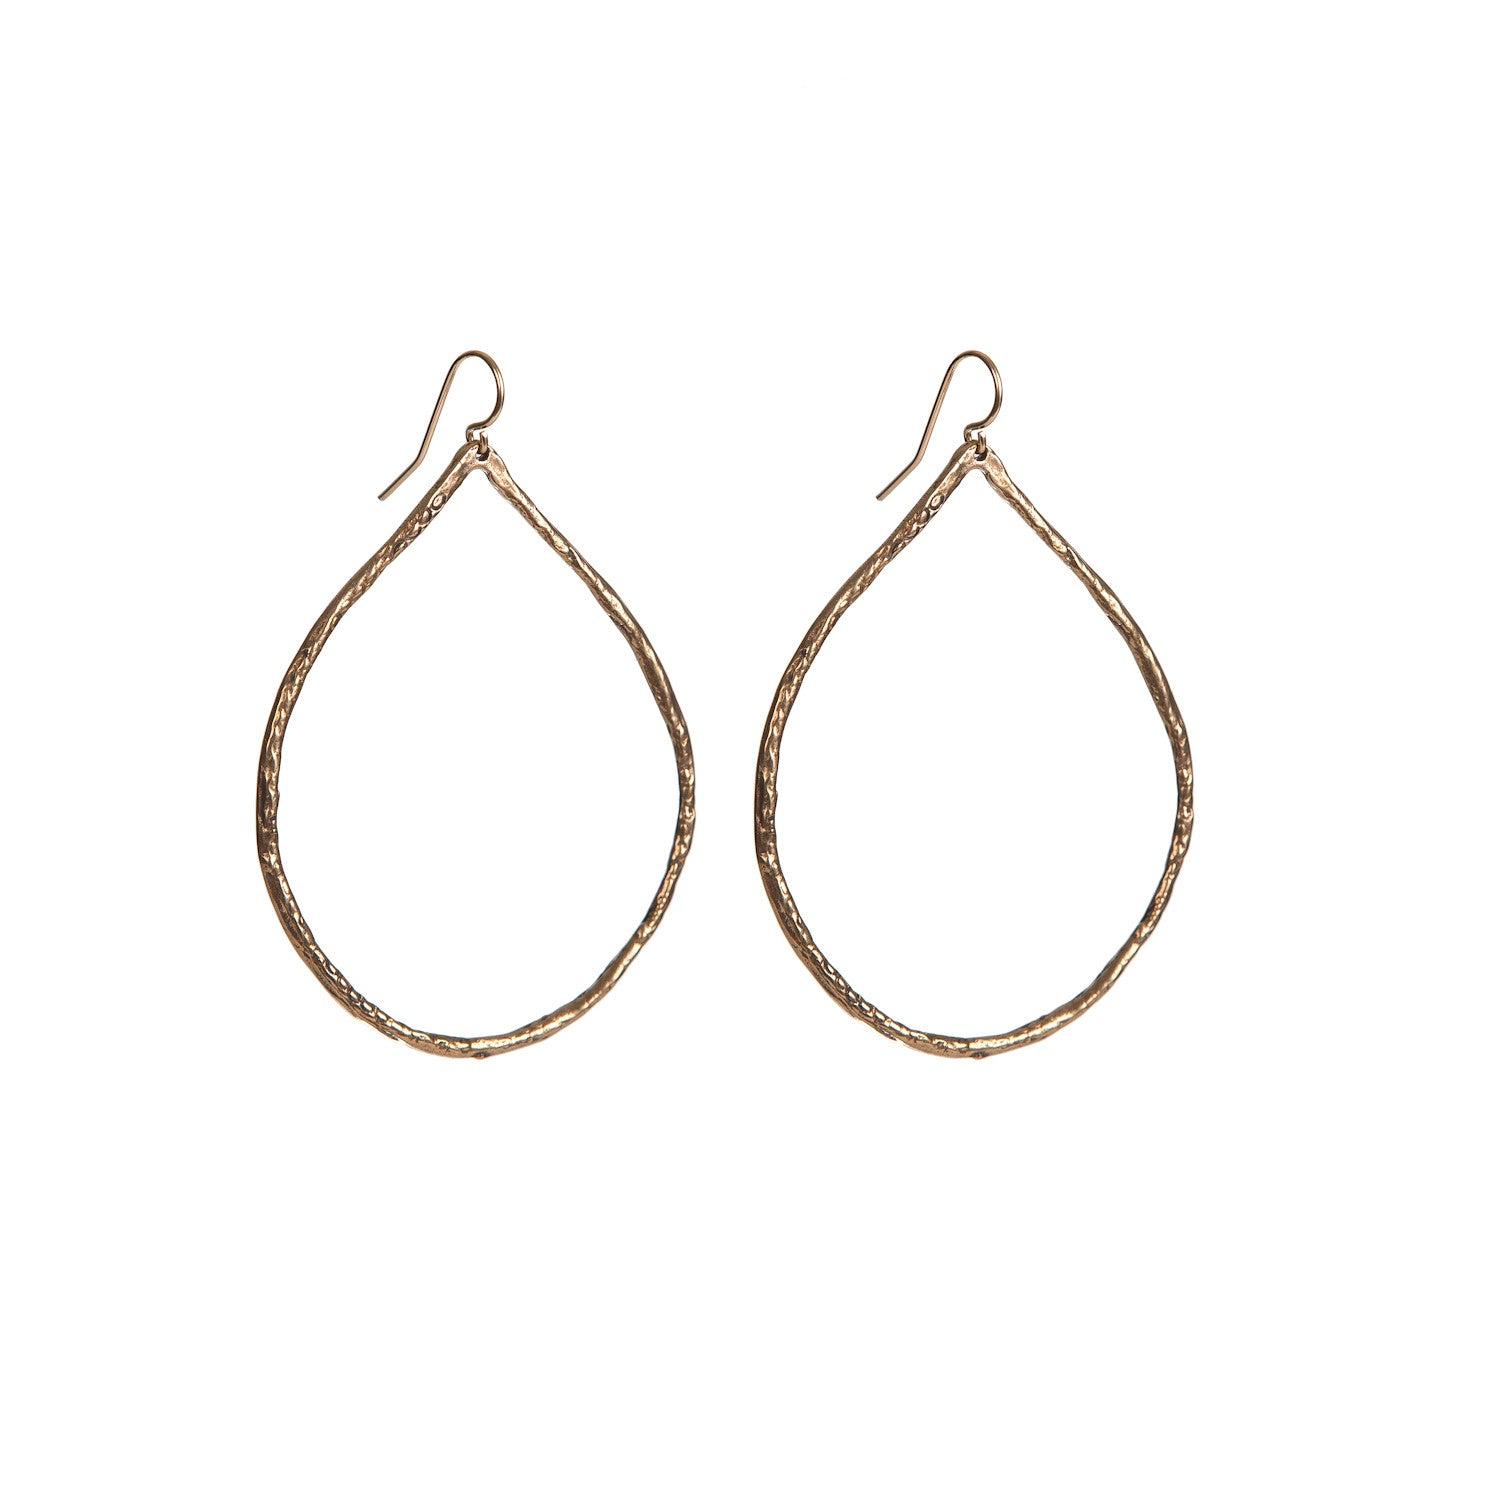 BRONZE TEARDROP HOOP EARRINGS